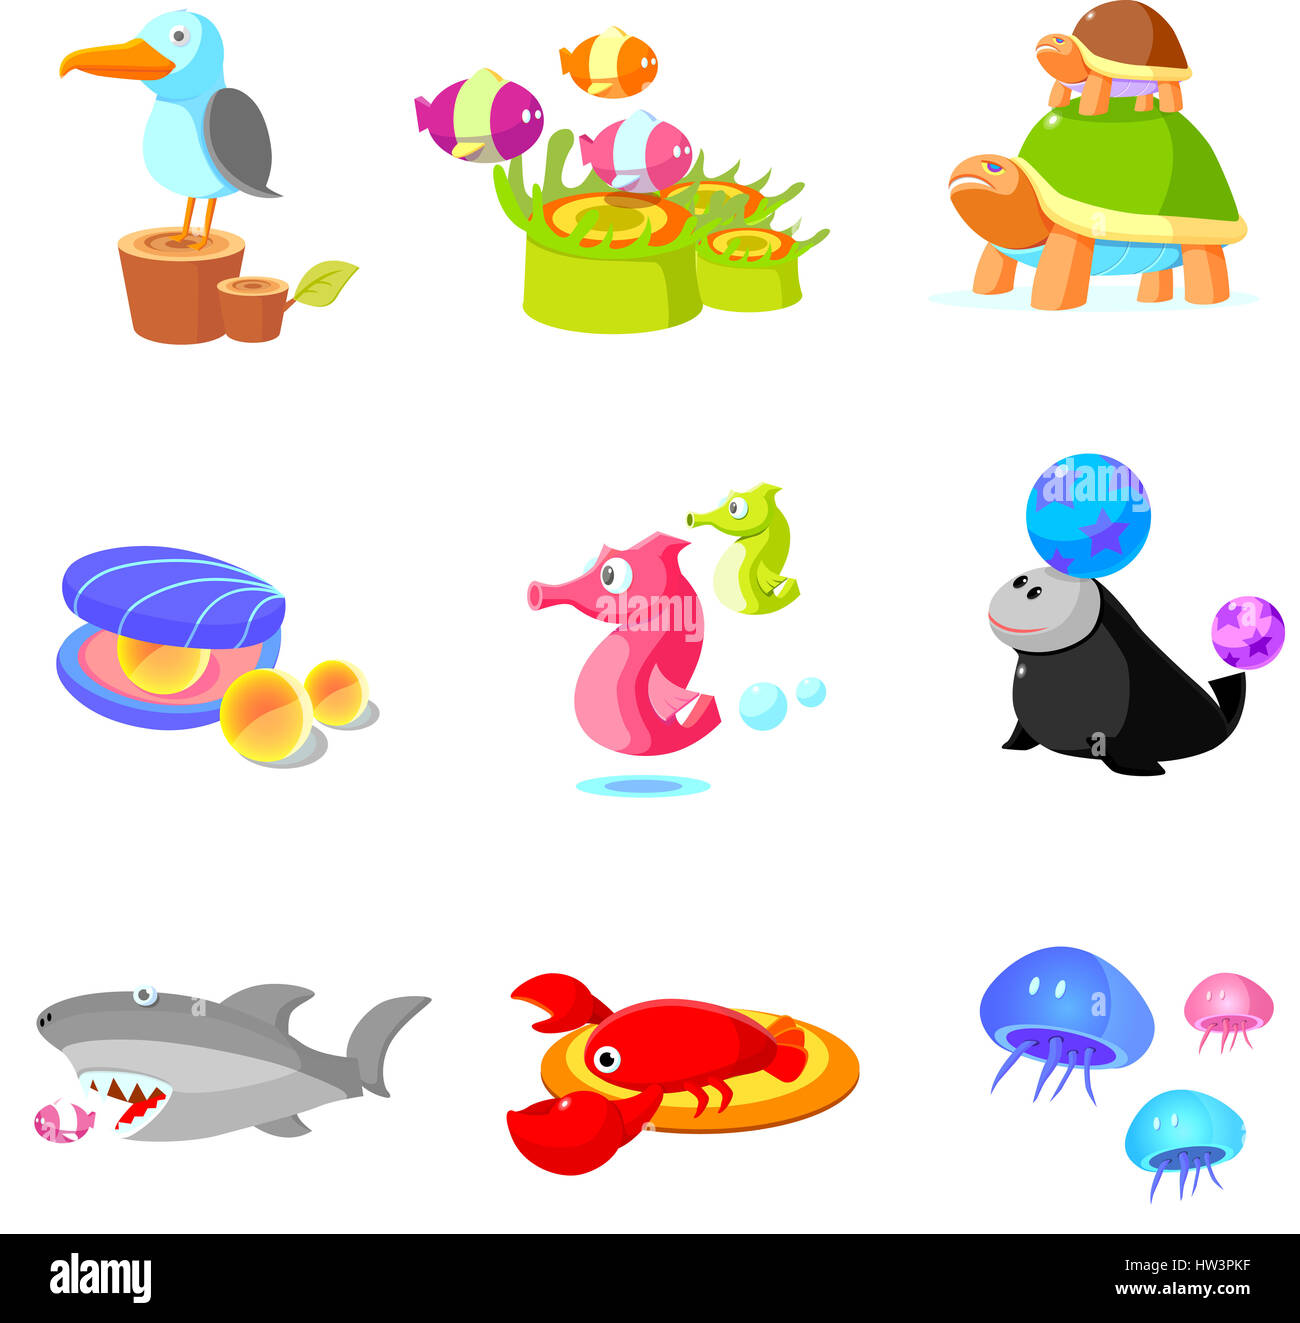 hight resolution of adult animal animal themes animal beach ball bead bird avian clipart close up color colour color image computer graphics computer icon coral digitally